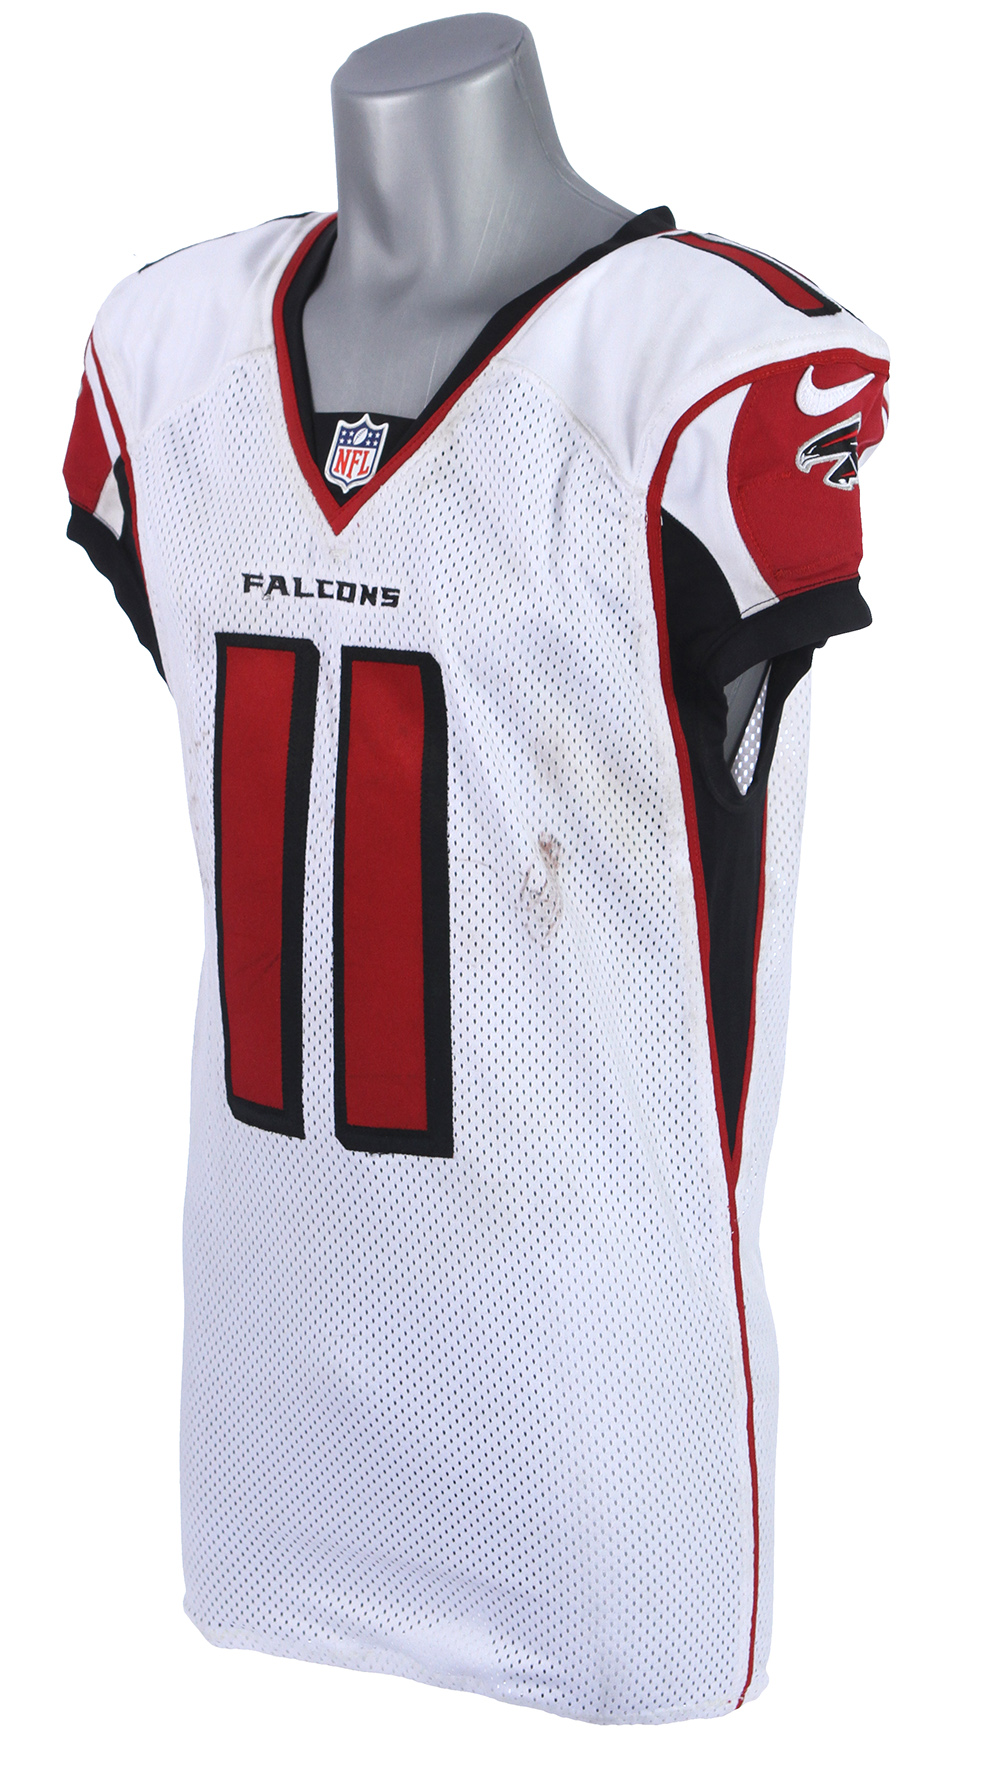 Lot Detail 2014 December 21 Julio Jones Atlanta Falcons Signed Game Worn Road Jersey Mears A10 Jsa Player Letter